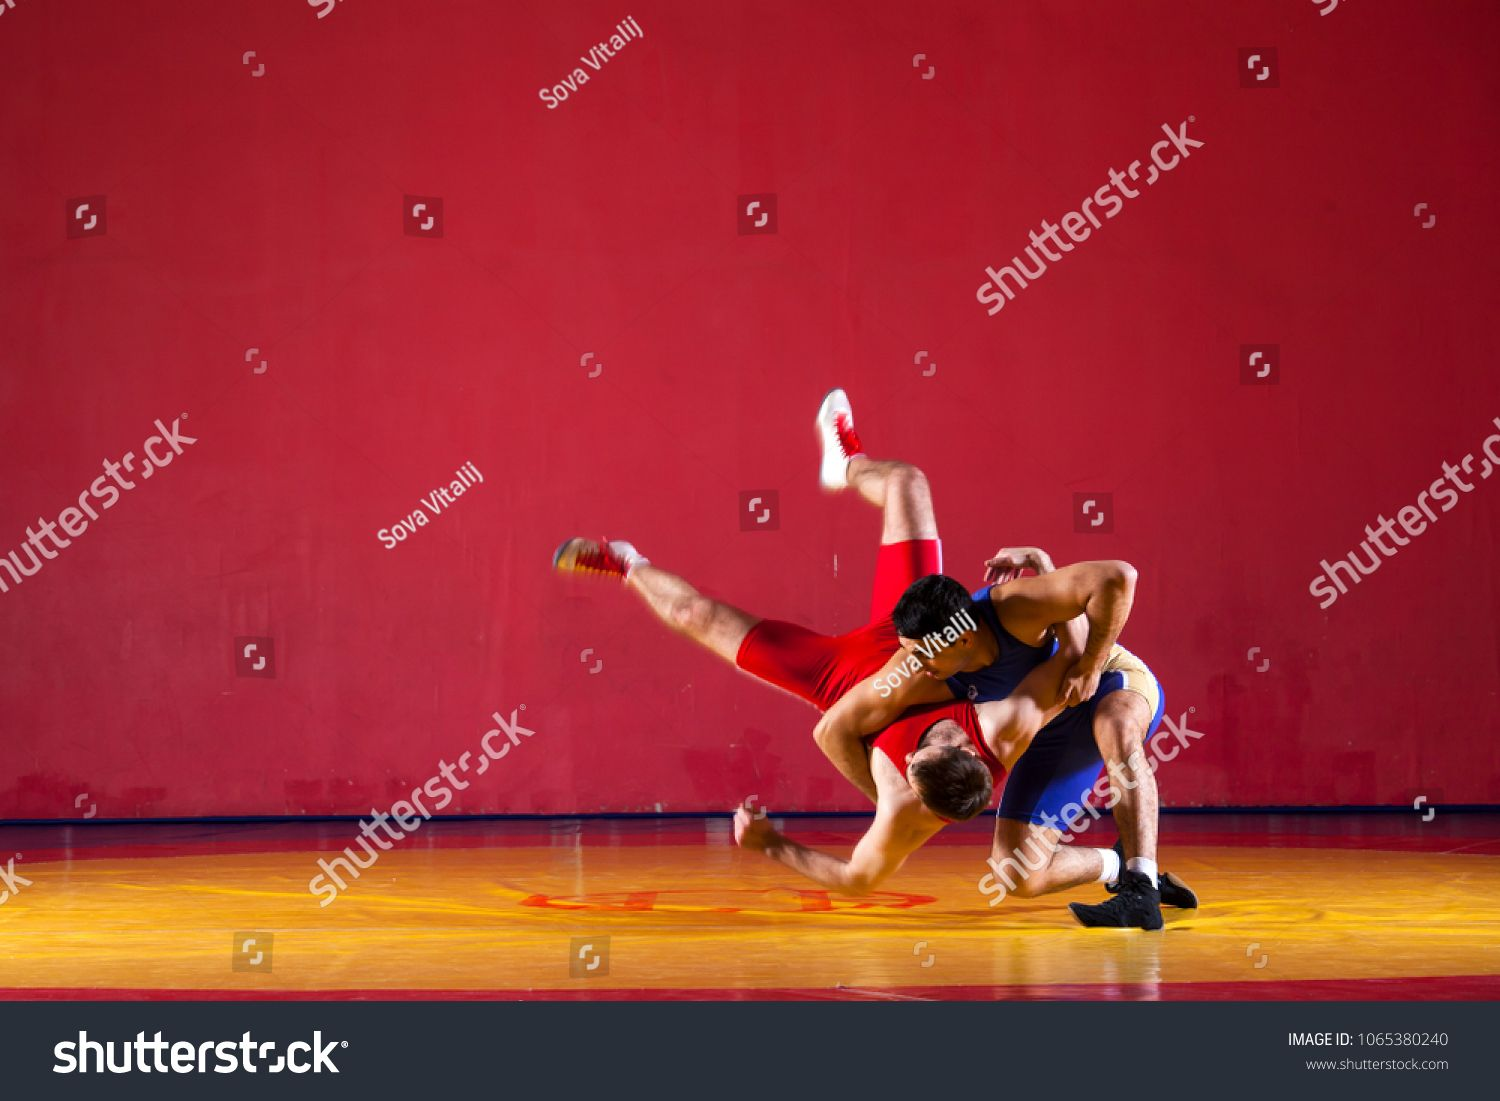 Two Strong Wrestlers In Blue Wrestling Tights Are Wrestlng And Making A Suplex Wrestling On A Yellow Wrestling Carpet In Th Wrestling Tights Wrestler Wrestling